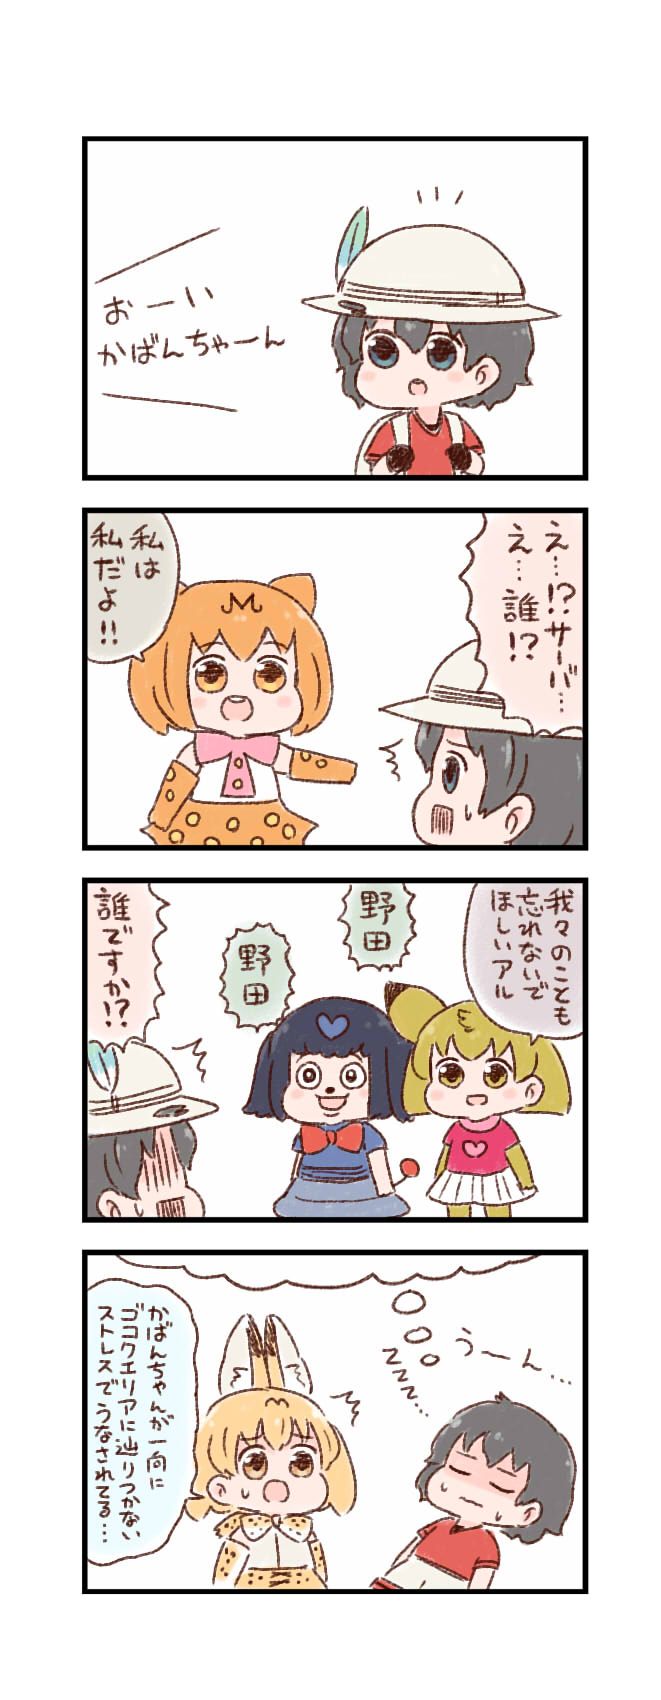 /\/\/\ 4koma 5girls :d :o alternate_color alternate_eye_color alternate_hair_color animal_ears batta_(ijigen_debris) black_eyes black_hair blonde_hair blush_stickers bow bowtie character_request comic commentary_request dreaming elbow_gloves gloves grey_hat grey_skirt hat_feather highres kaban_(kemono_friends) kemono_friends multiple_girls necktie notice_lines open_mouth orange_gloves orange_skirt pleated_skirt round_teeth serval_(kemono_friends) short_hair simple_background skirt smile snout tail teeth translation_request turn_pale white_background white_skirt yellow_eyes